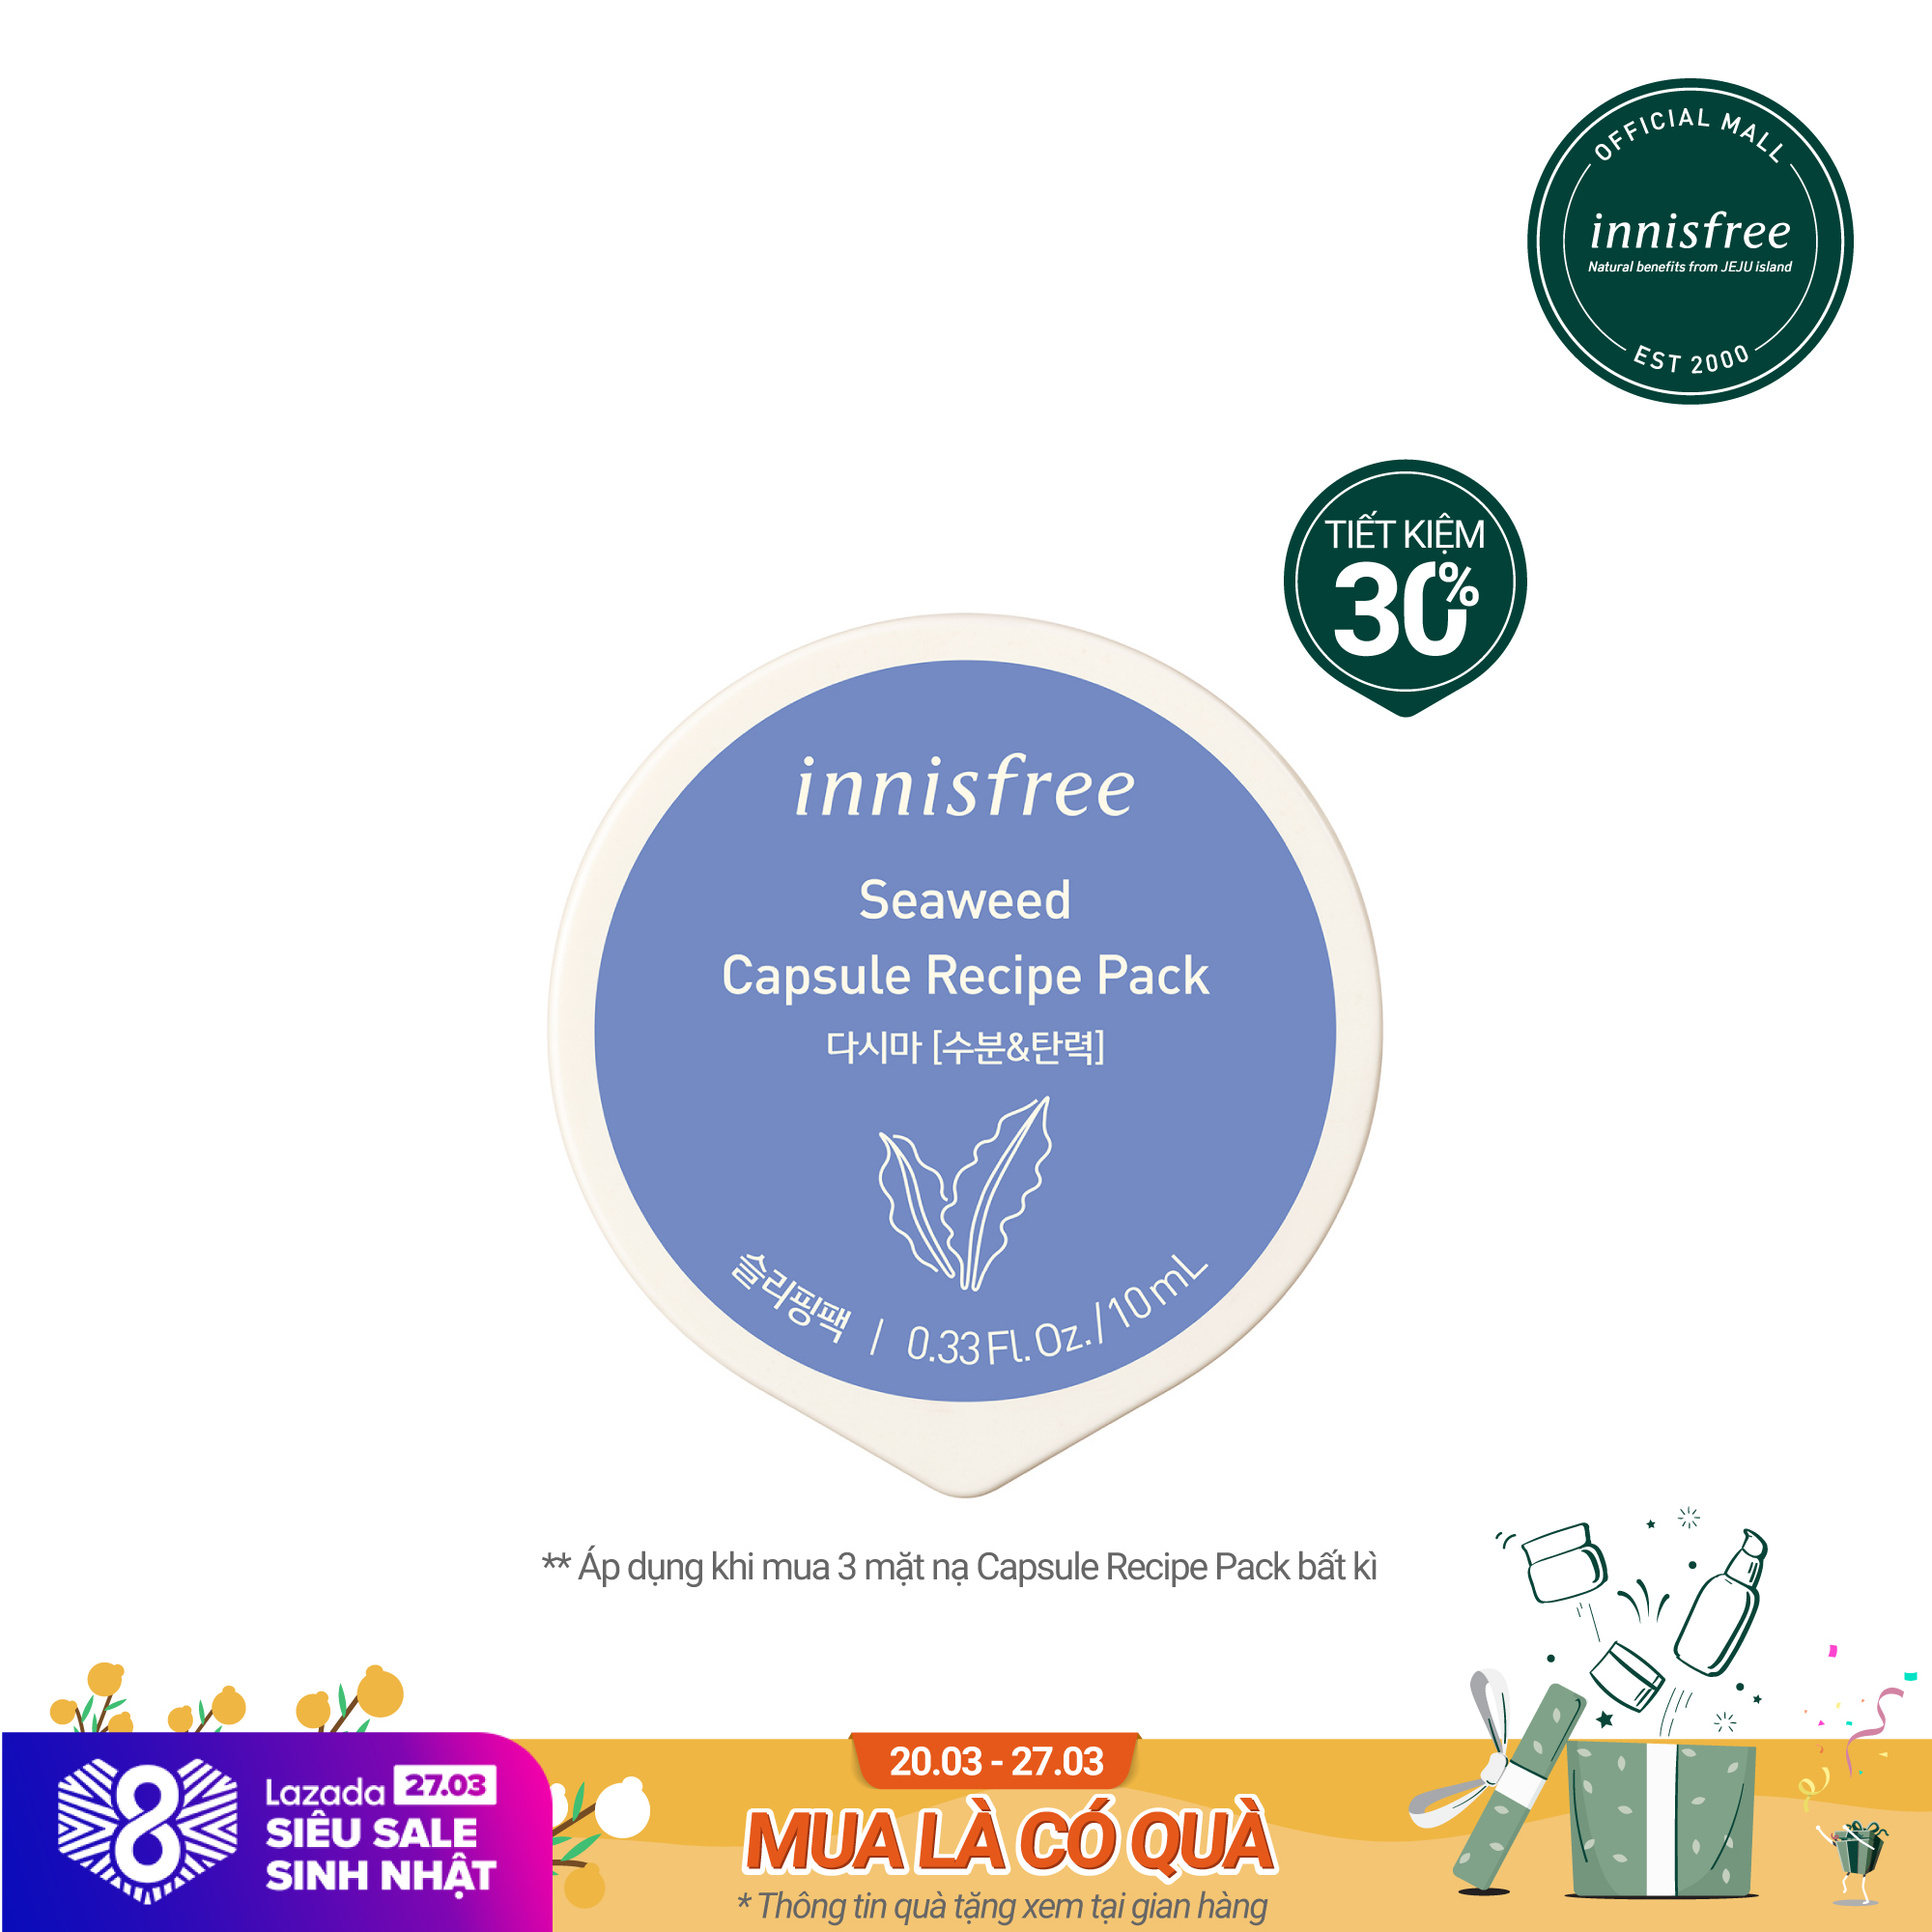 Mặt nạ ngủ dạng hủ từ rong biển innisfree Capsule Recipe Pack Sea Weed 10ml cao cấp